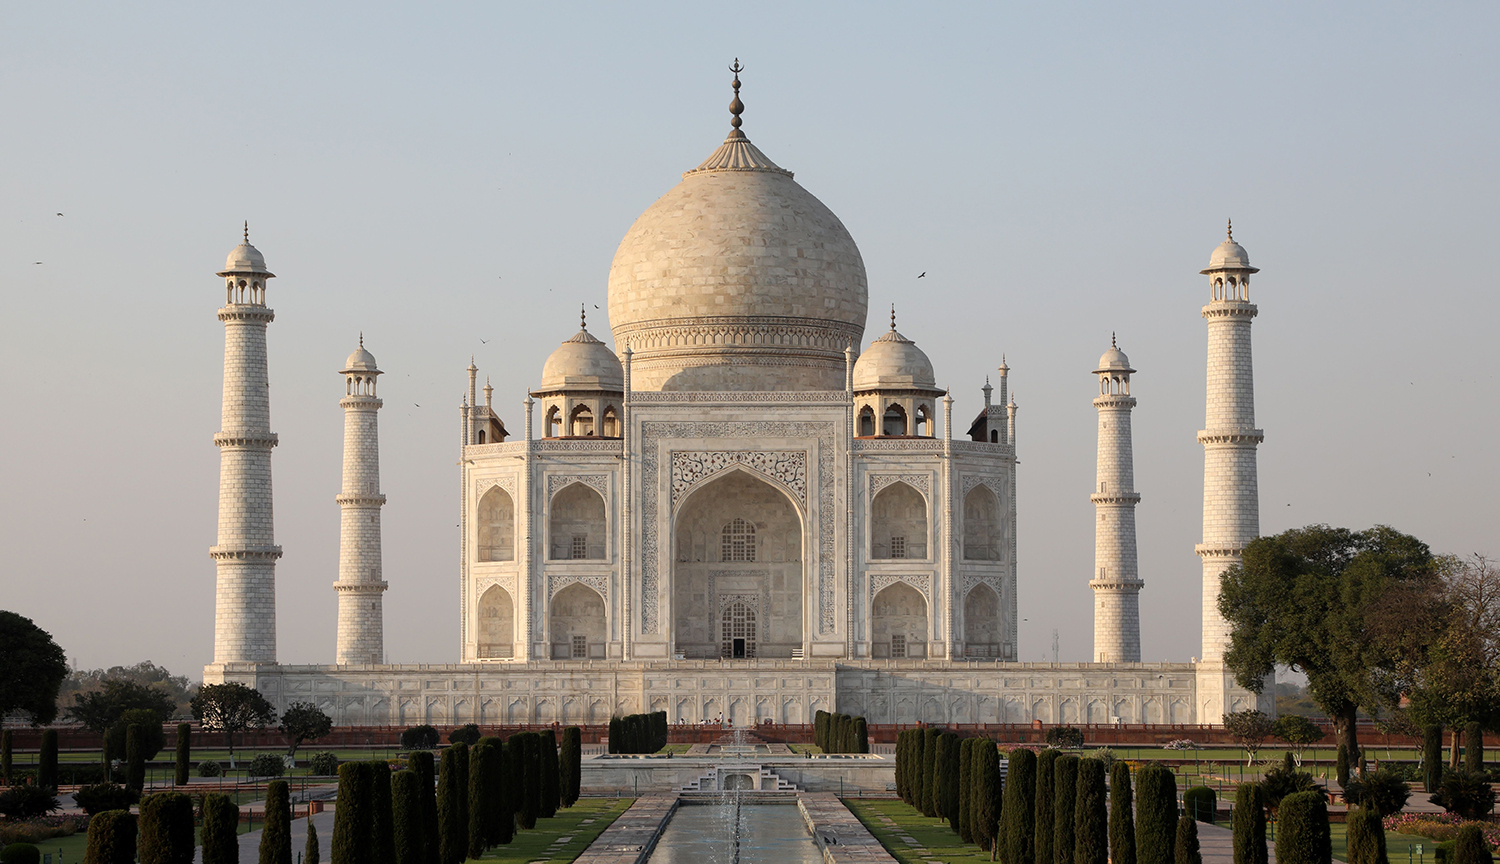 The Taj Mahal mausoleum is pictured in Agra, India, on March 11, 2018.